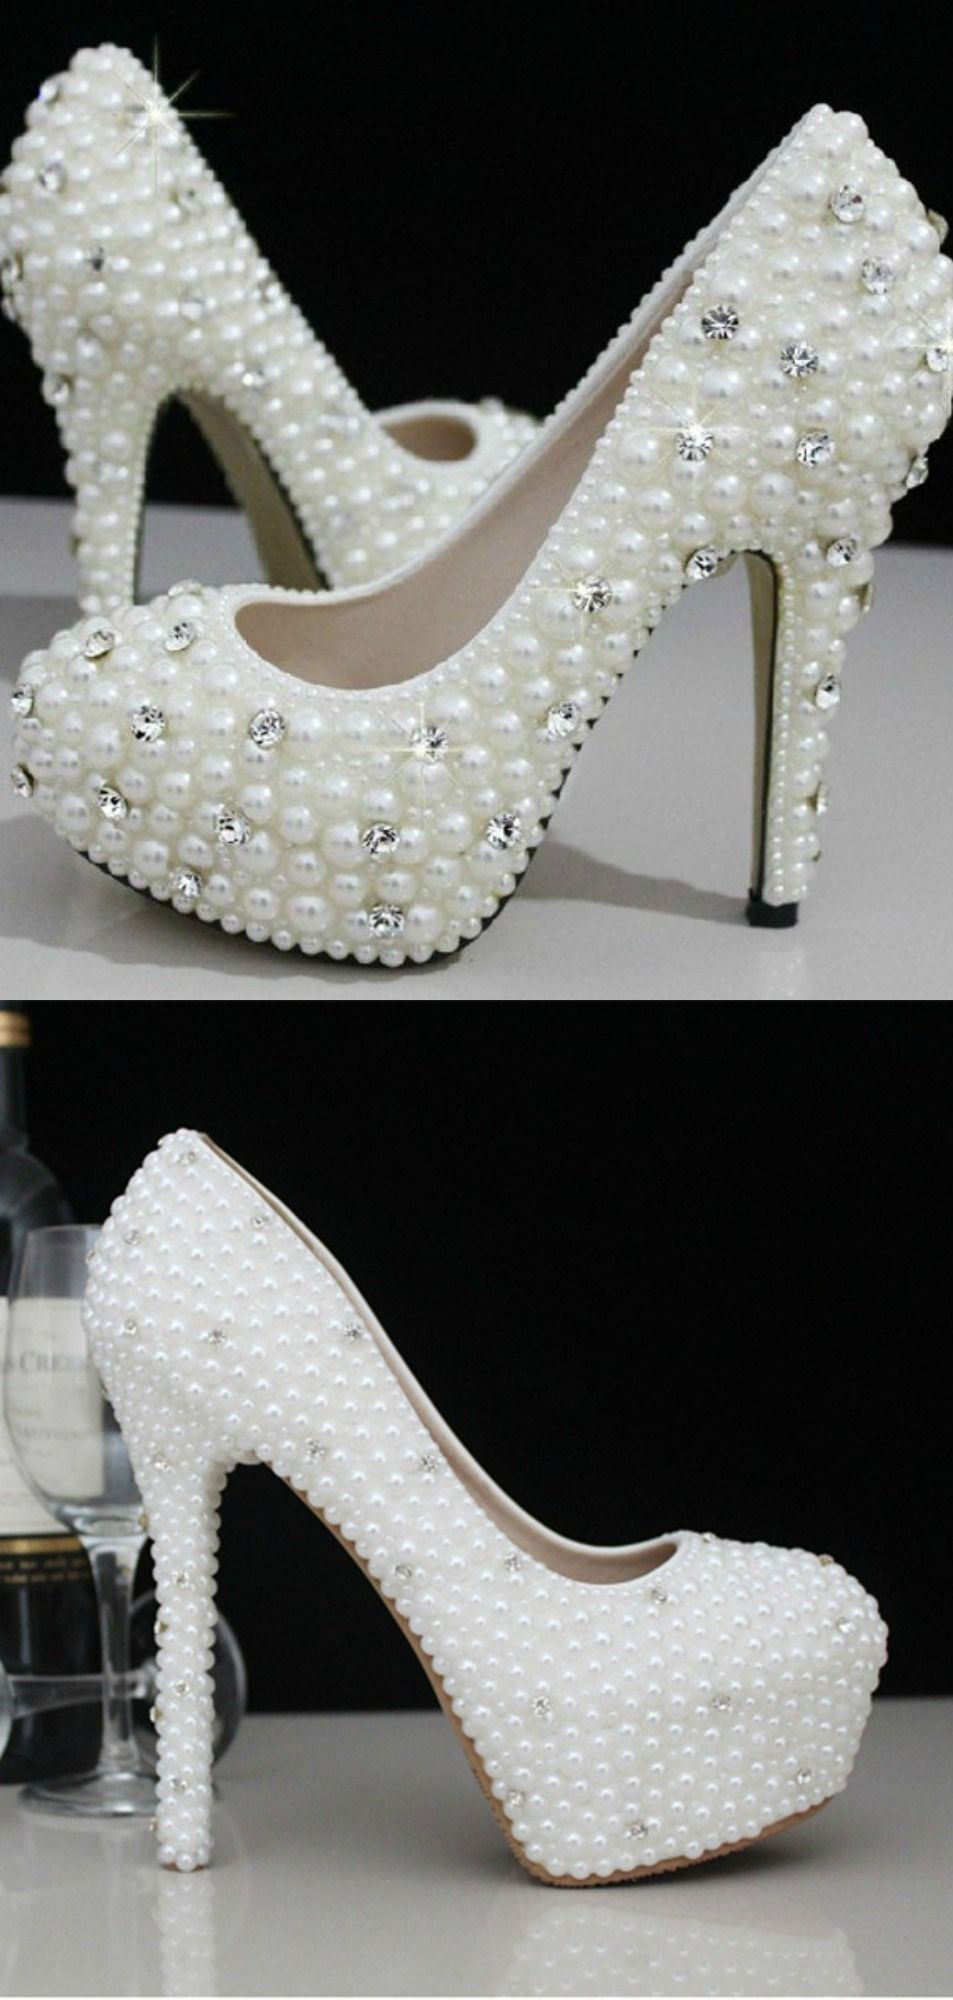 Cinderella s Wish Wedding Shoes. Bridal shoes.You must feel like a princess  on the big day and these gorgeous crystal and pearl wedding shoes will do  just ... adccb72909